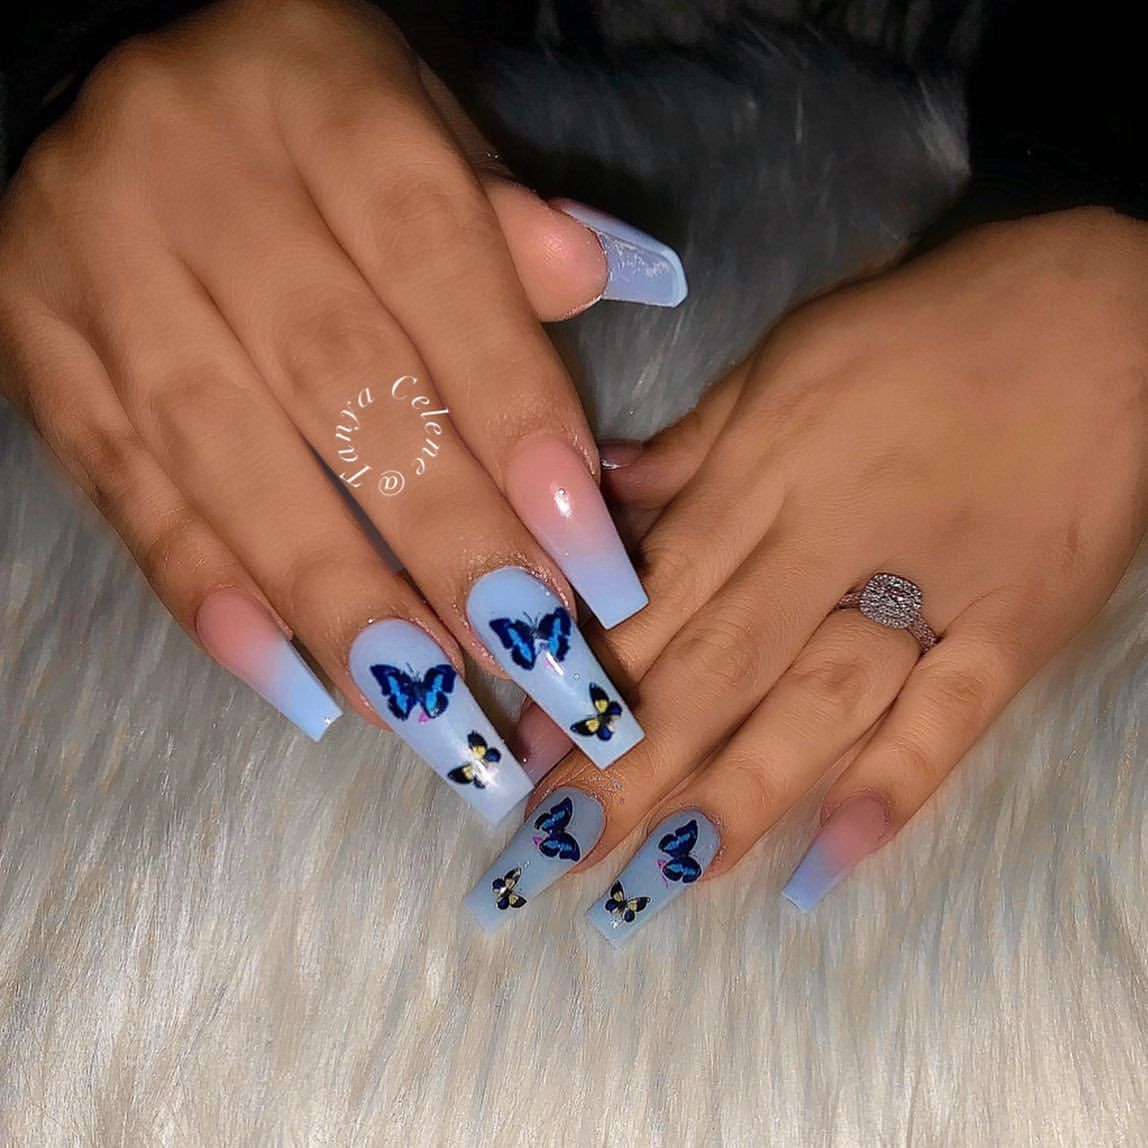 Blue Glitter Butterfly Coffin Acrylic Nails In 2020 Acrylic Nails Vintage Nails Pretty Acrylic Nails